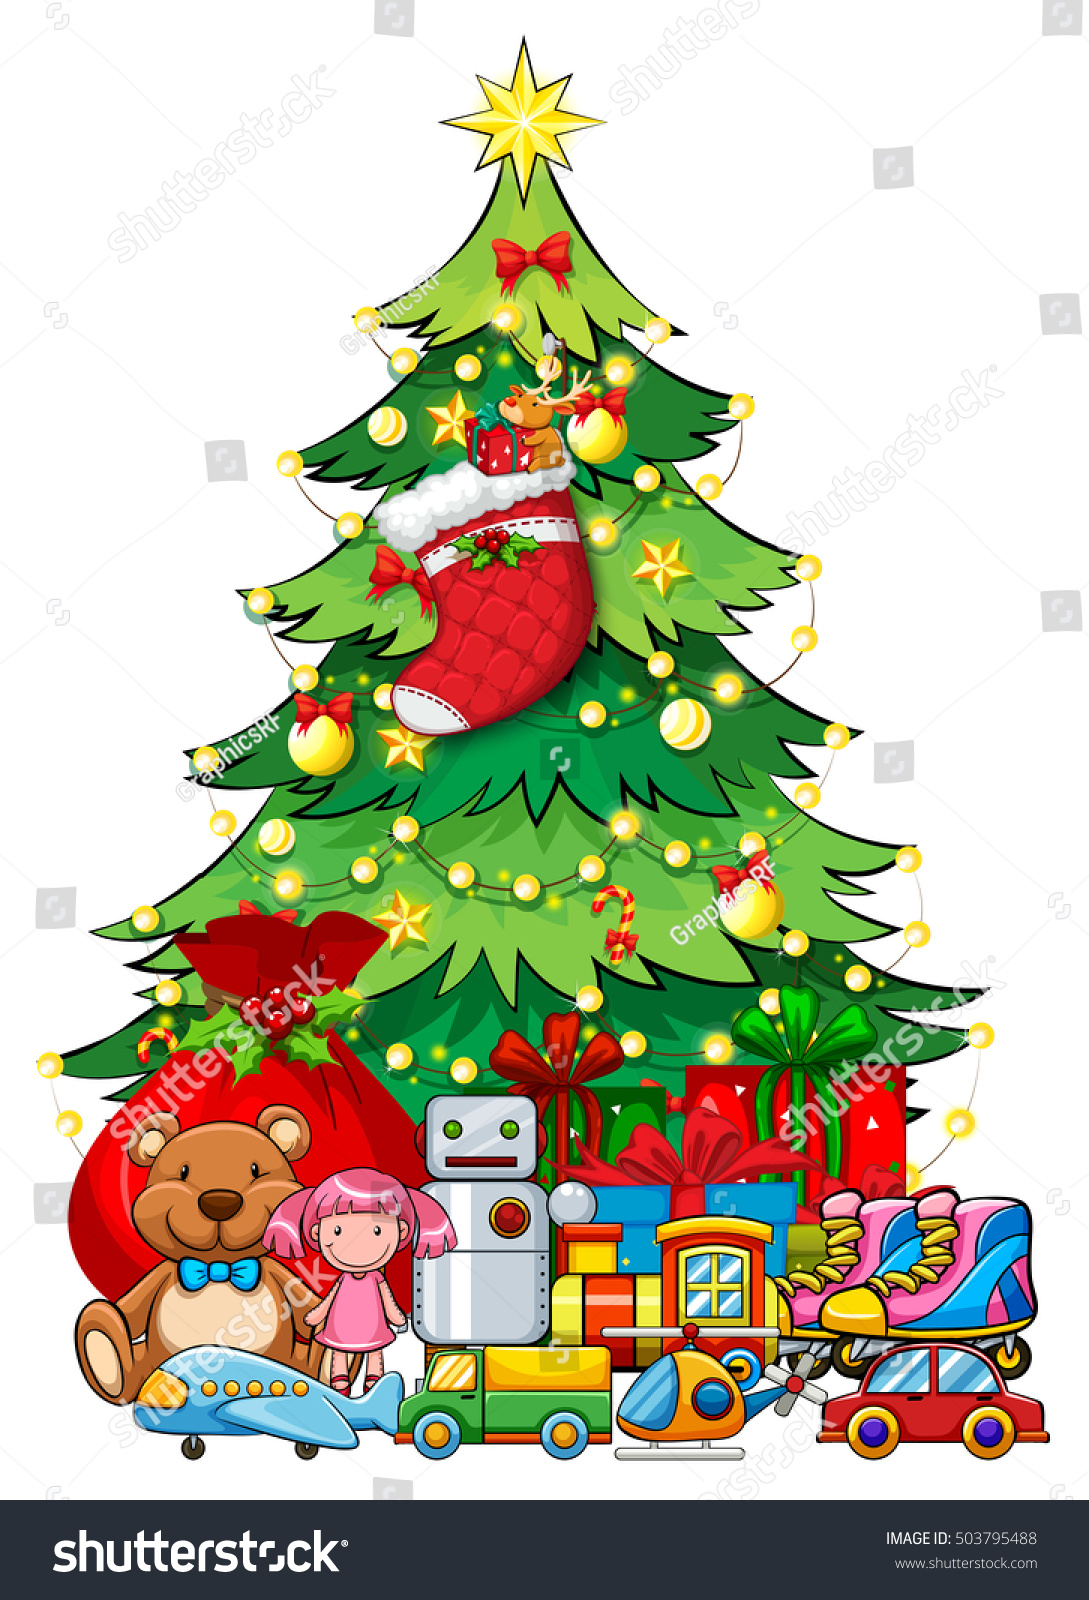 Christmas Tree With Toys : Many toys under christmas tree illustration stock vector